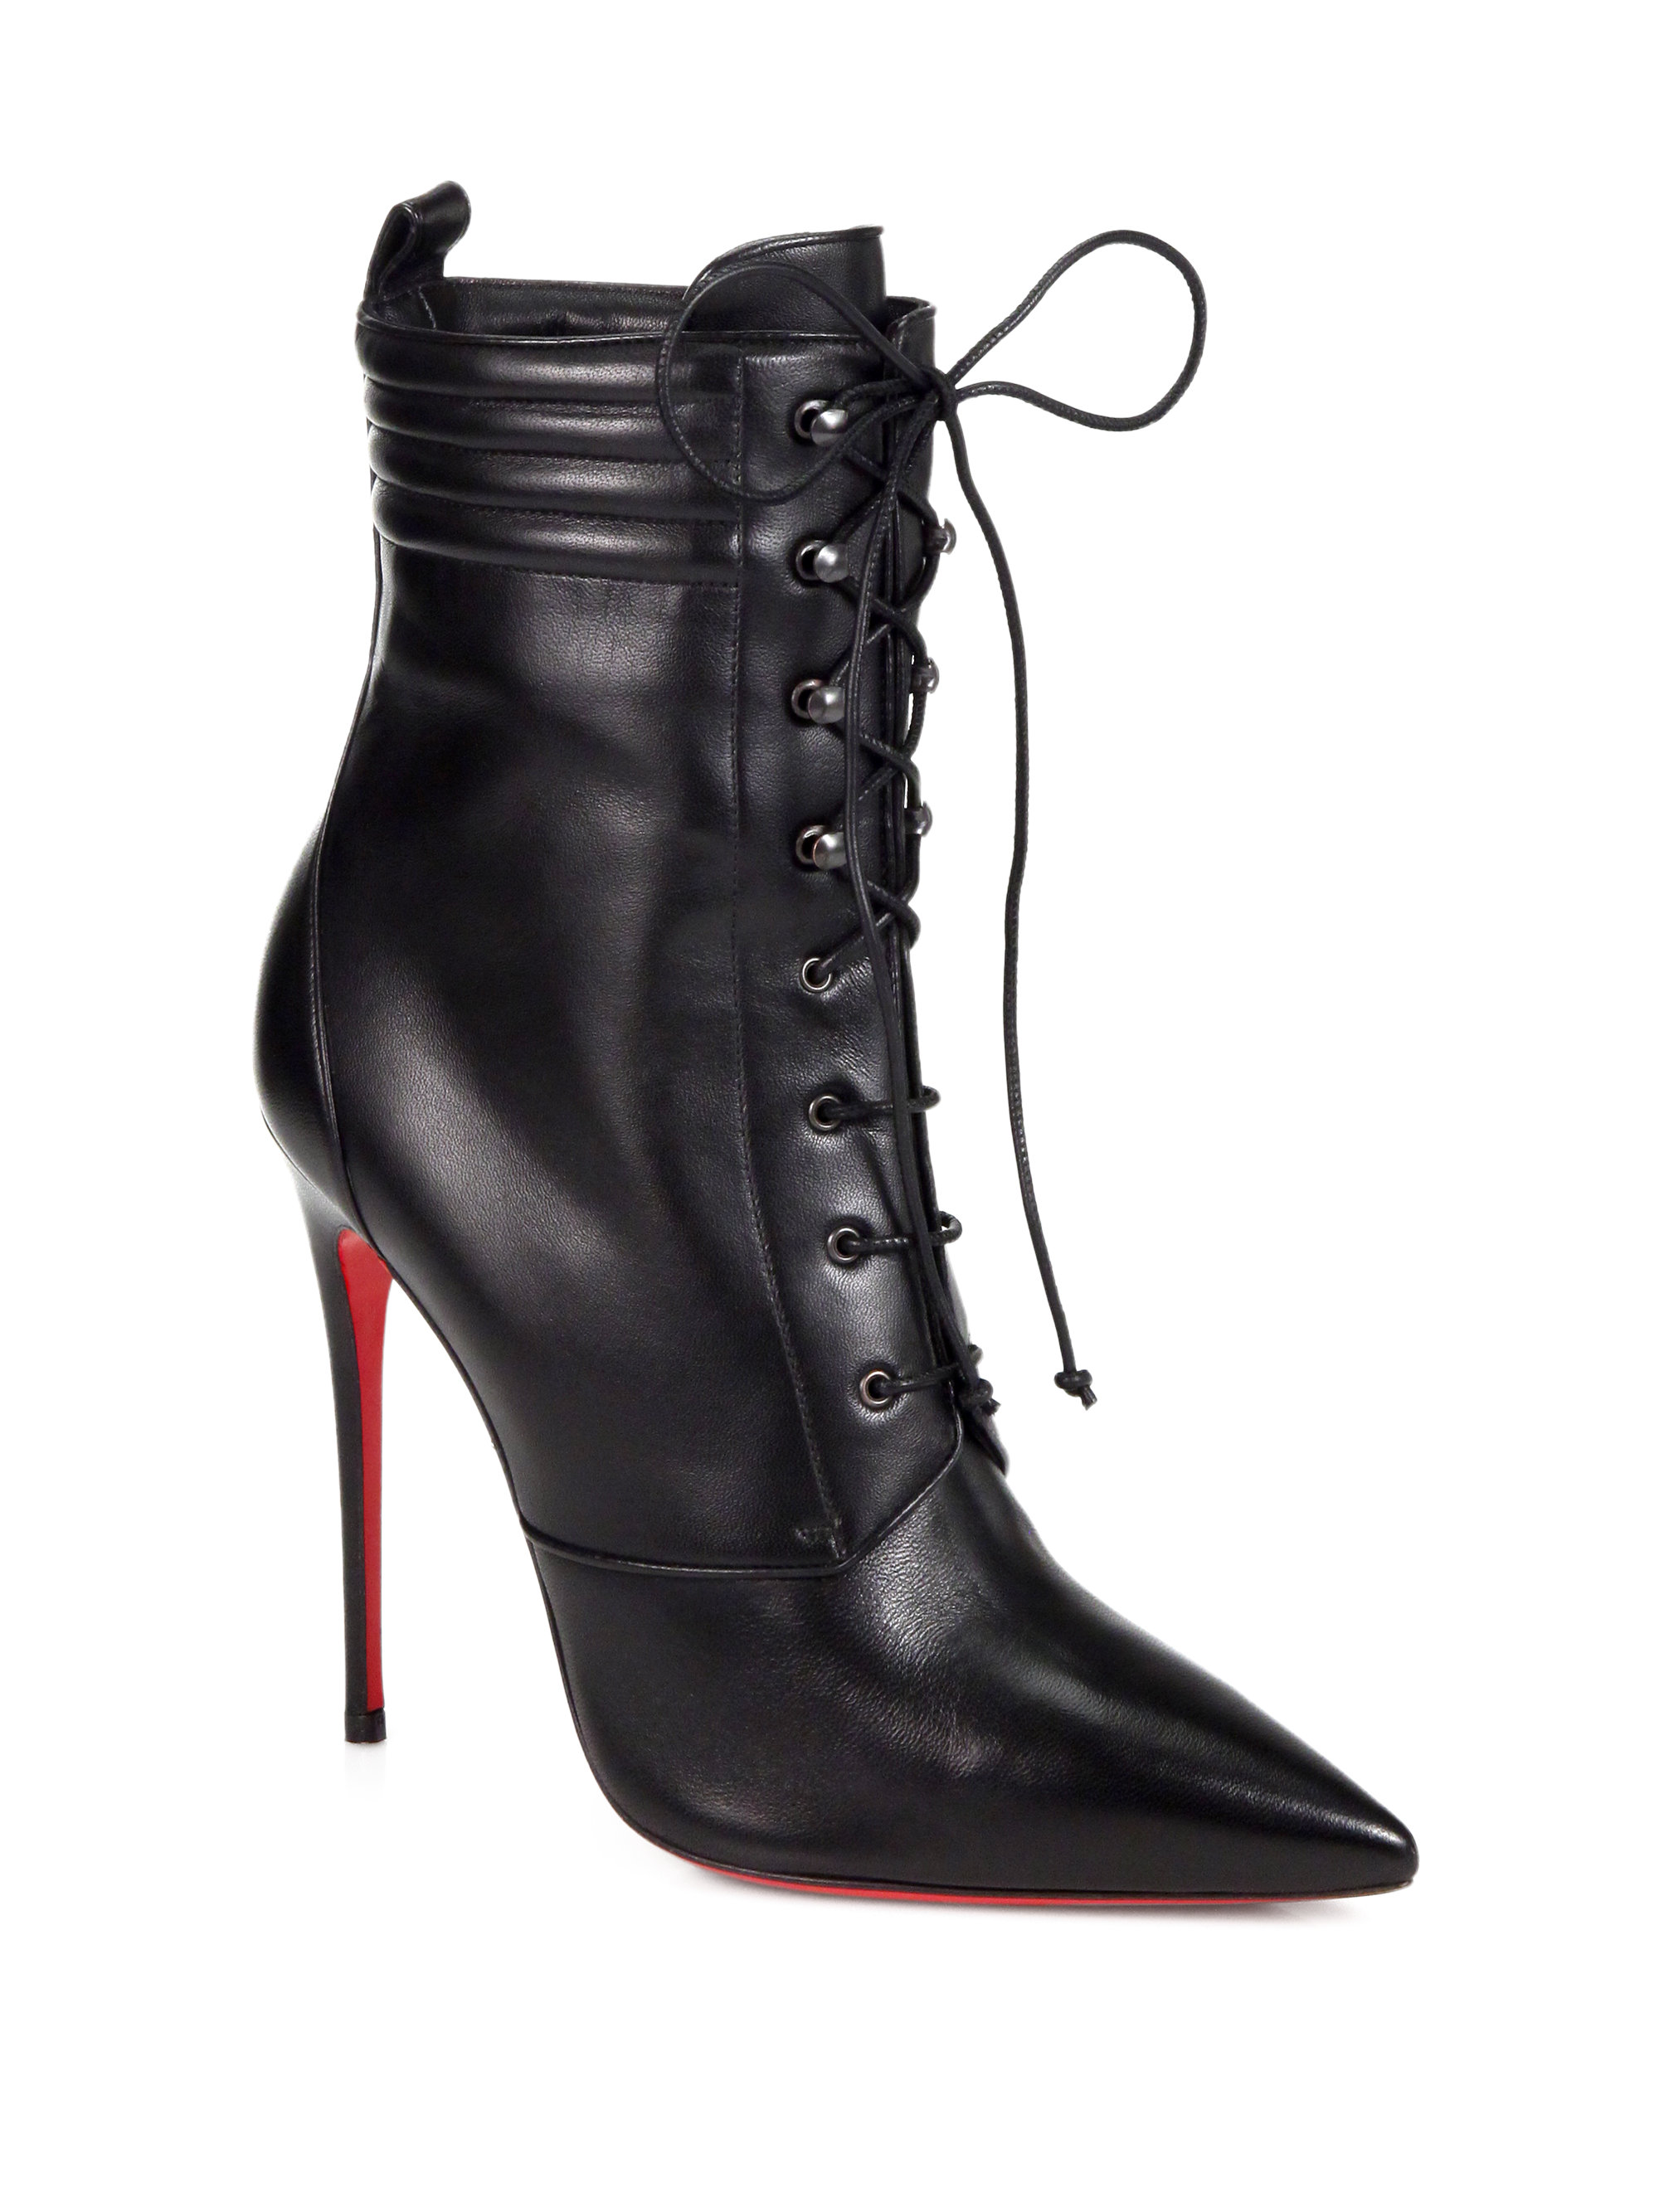 fake red bottom shoes for sale - christian louboutin leather knee-high boots Brown pointed toes ...